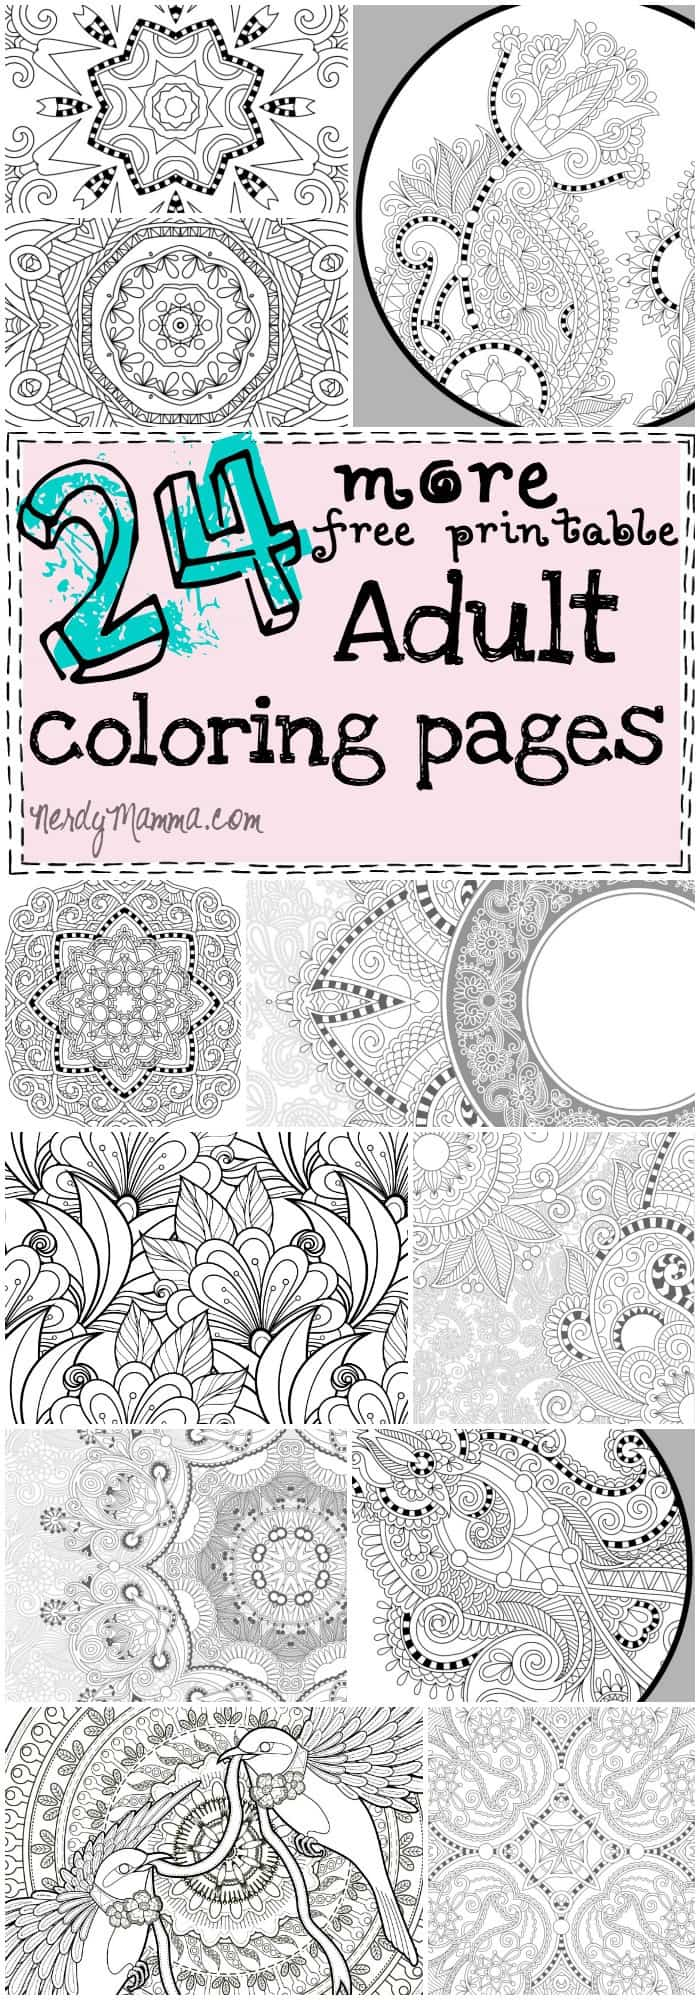 This is the coolest set of free printable adult coloring pages ever. There's 24 of them and they're all so beautiful!